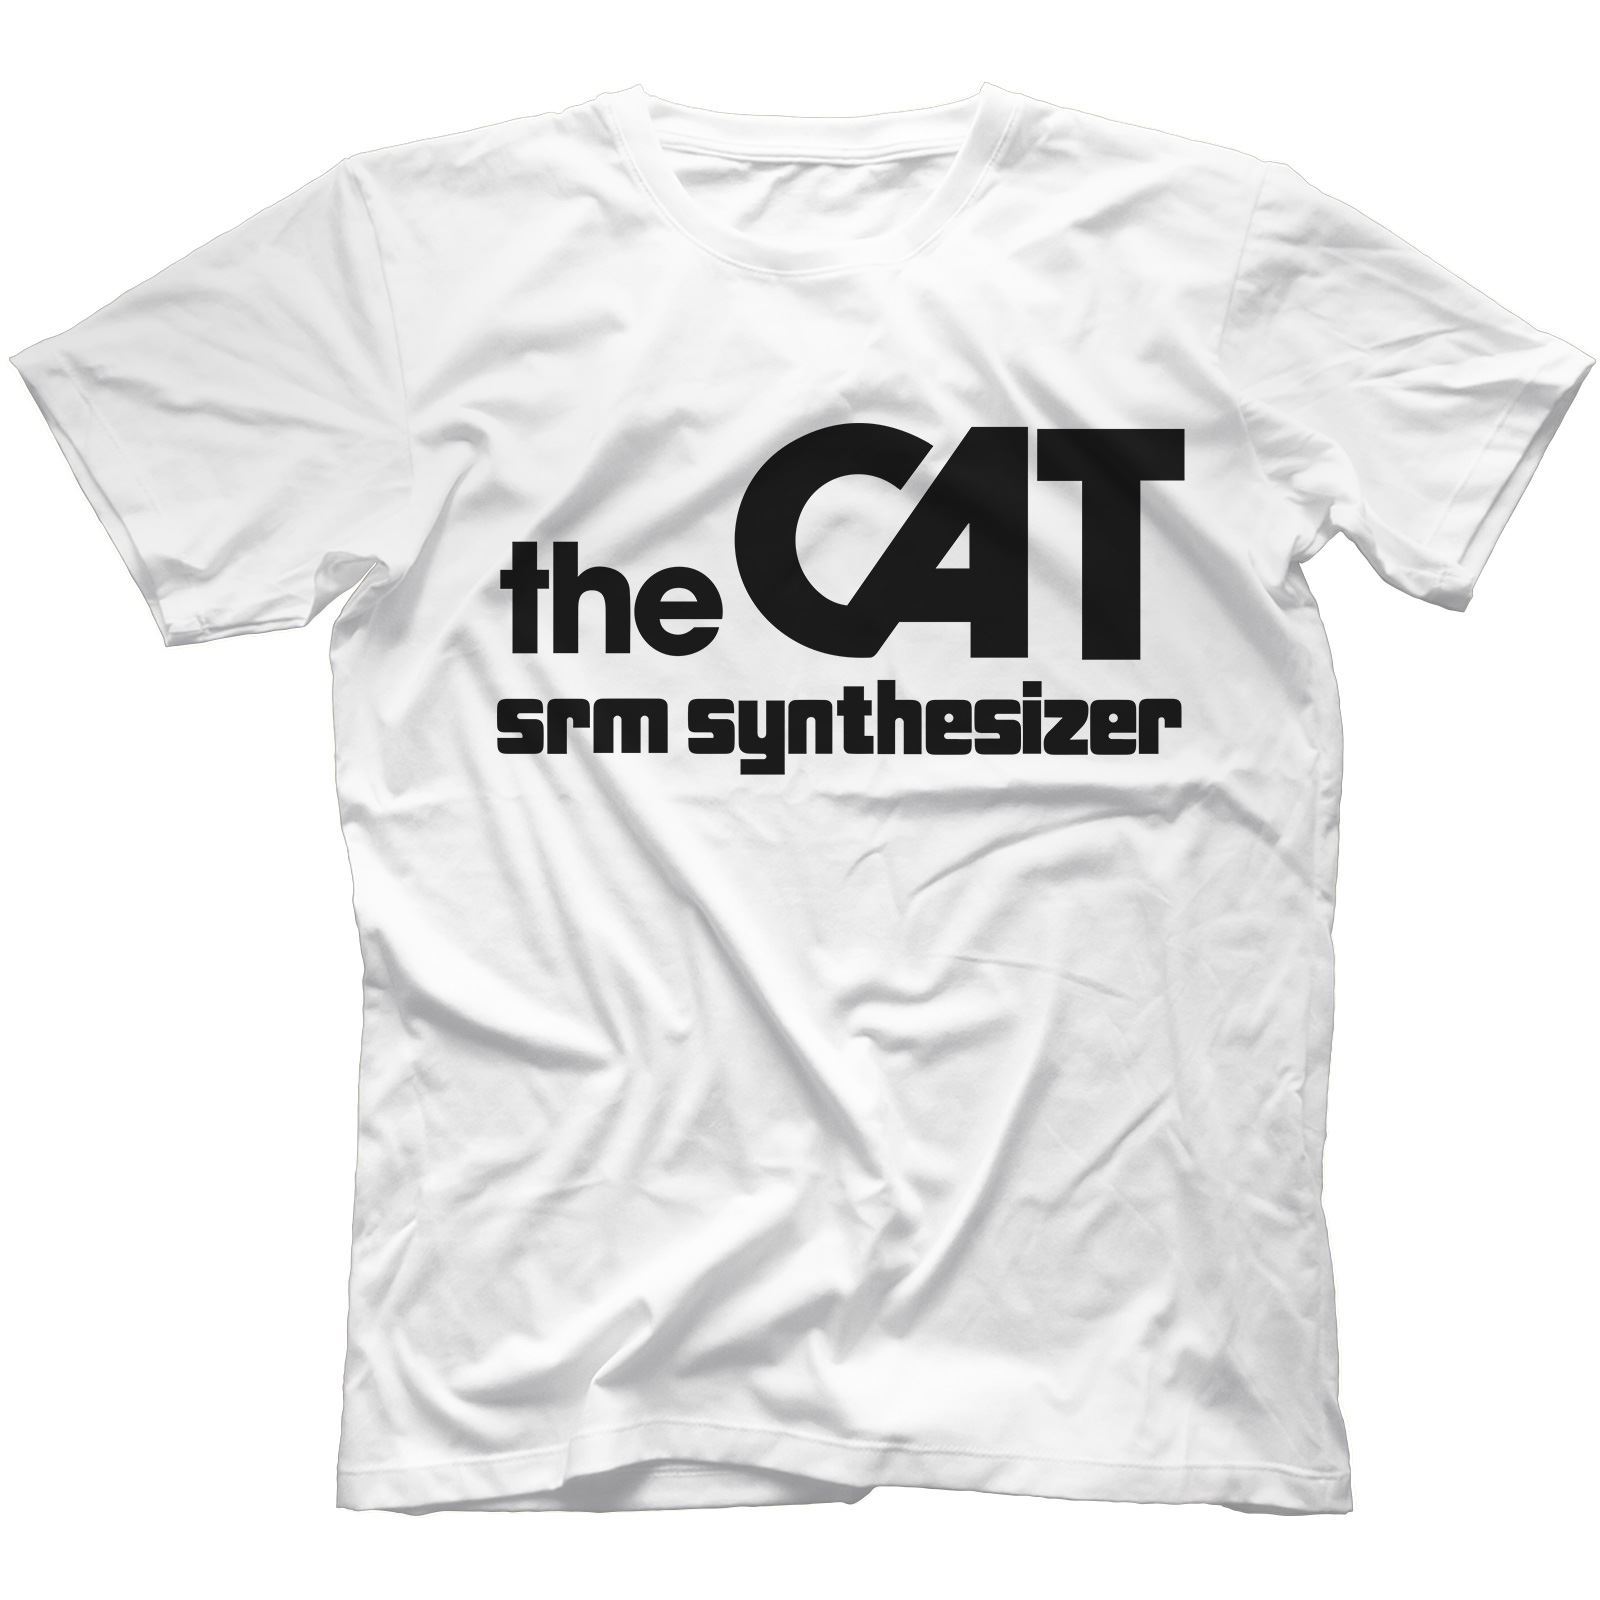 The-Cat-SRM-Synthesiser-T-Shirt-100-Cotton-Retro-Analog-Arp-Odyssey Indexbild 56